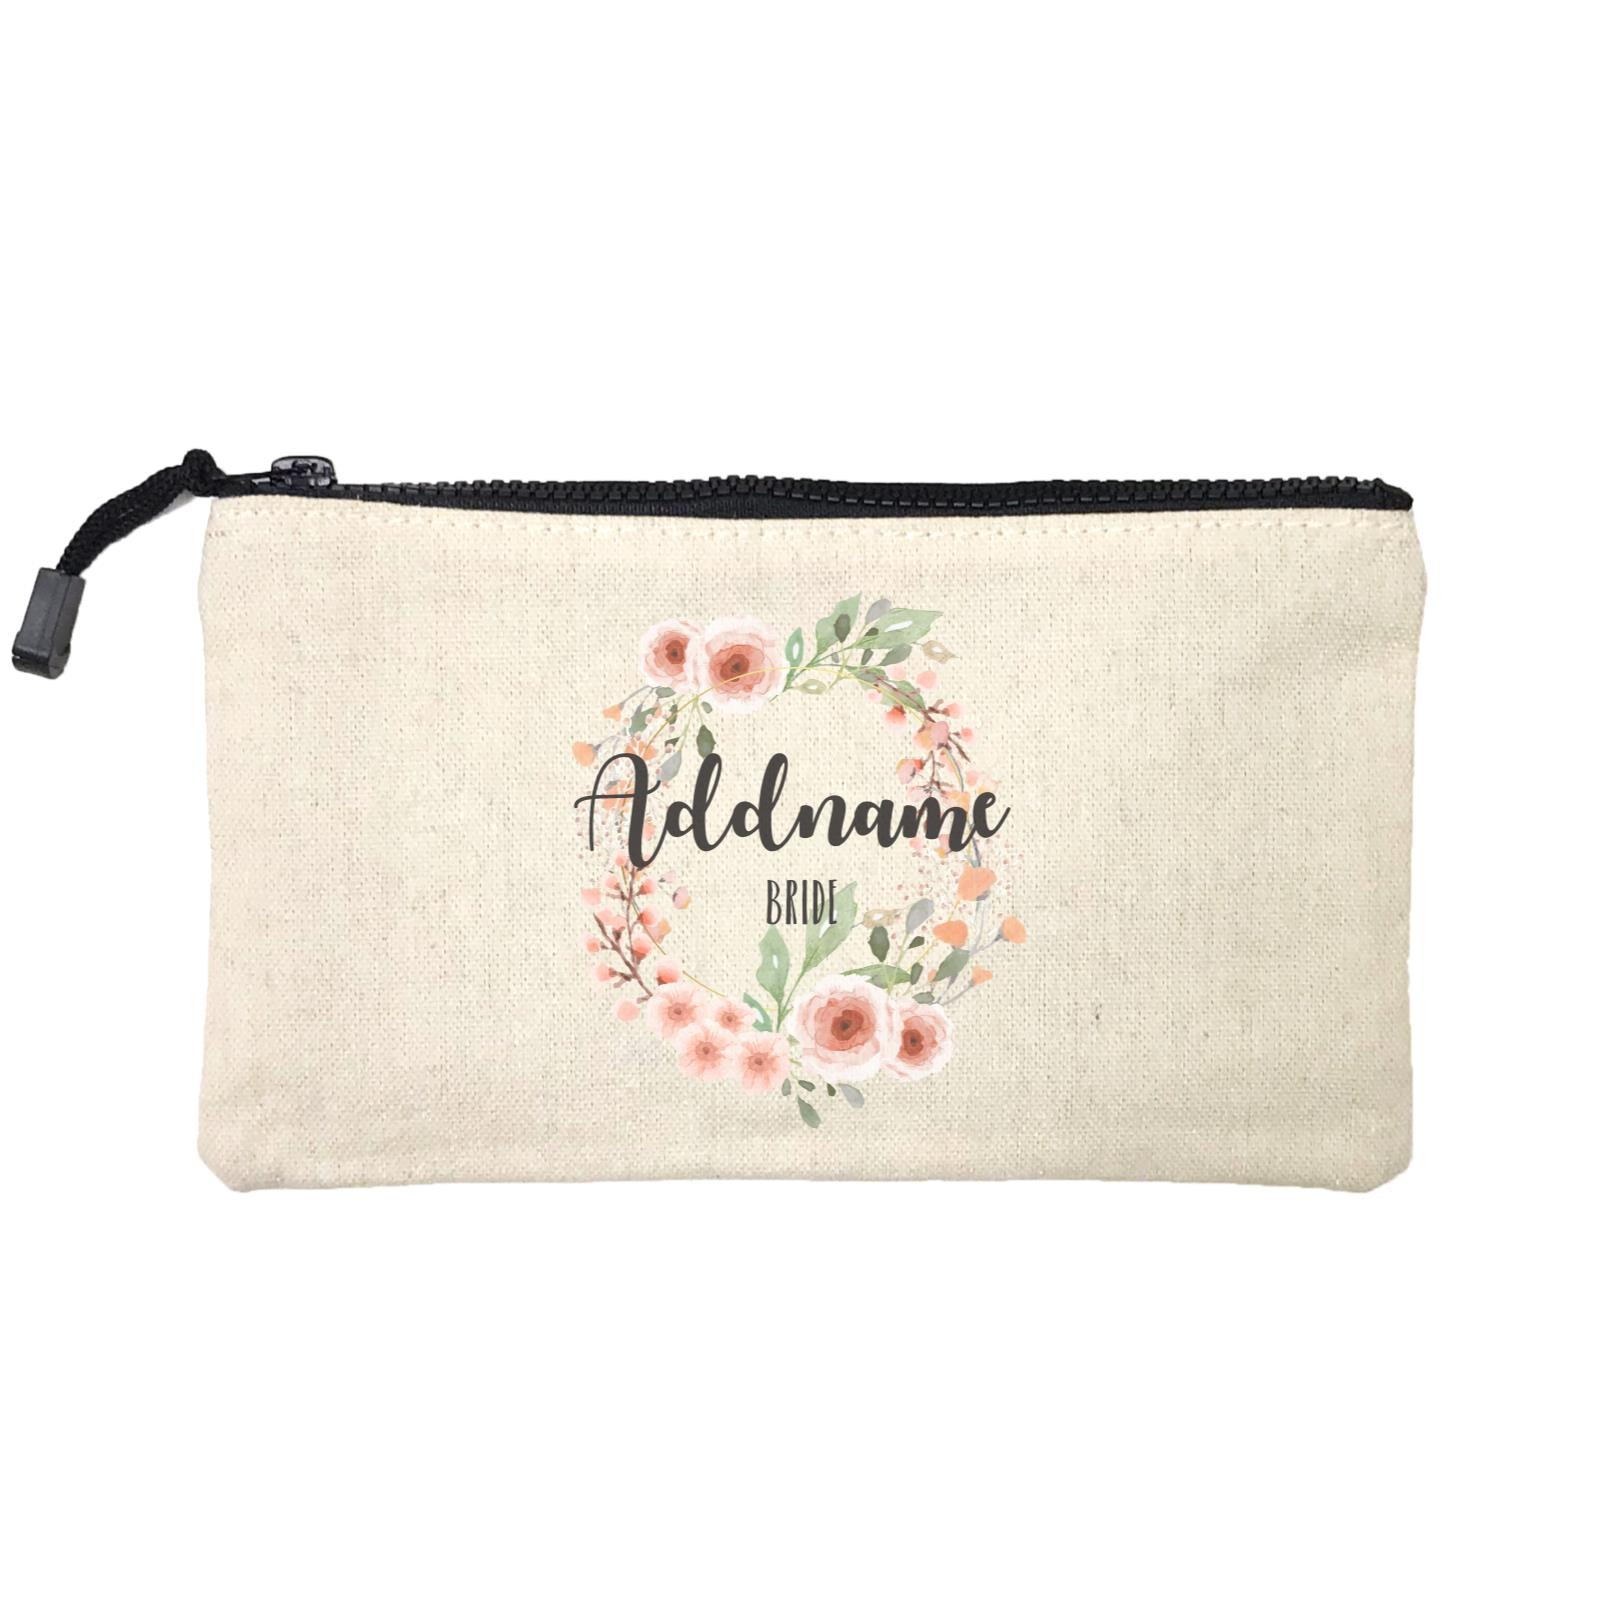 Bridesmaid Floral Sweet 2 Watercolour Flower Wreath Bride Addname Mini Accessories Stationery Pouch